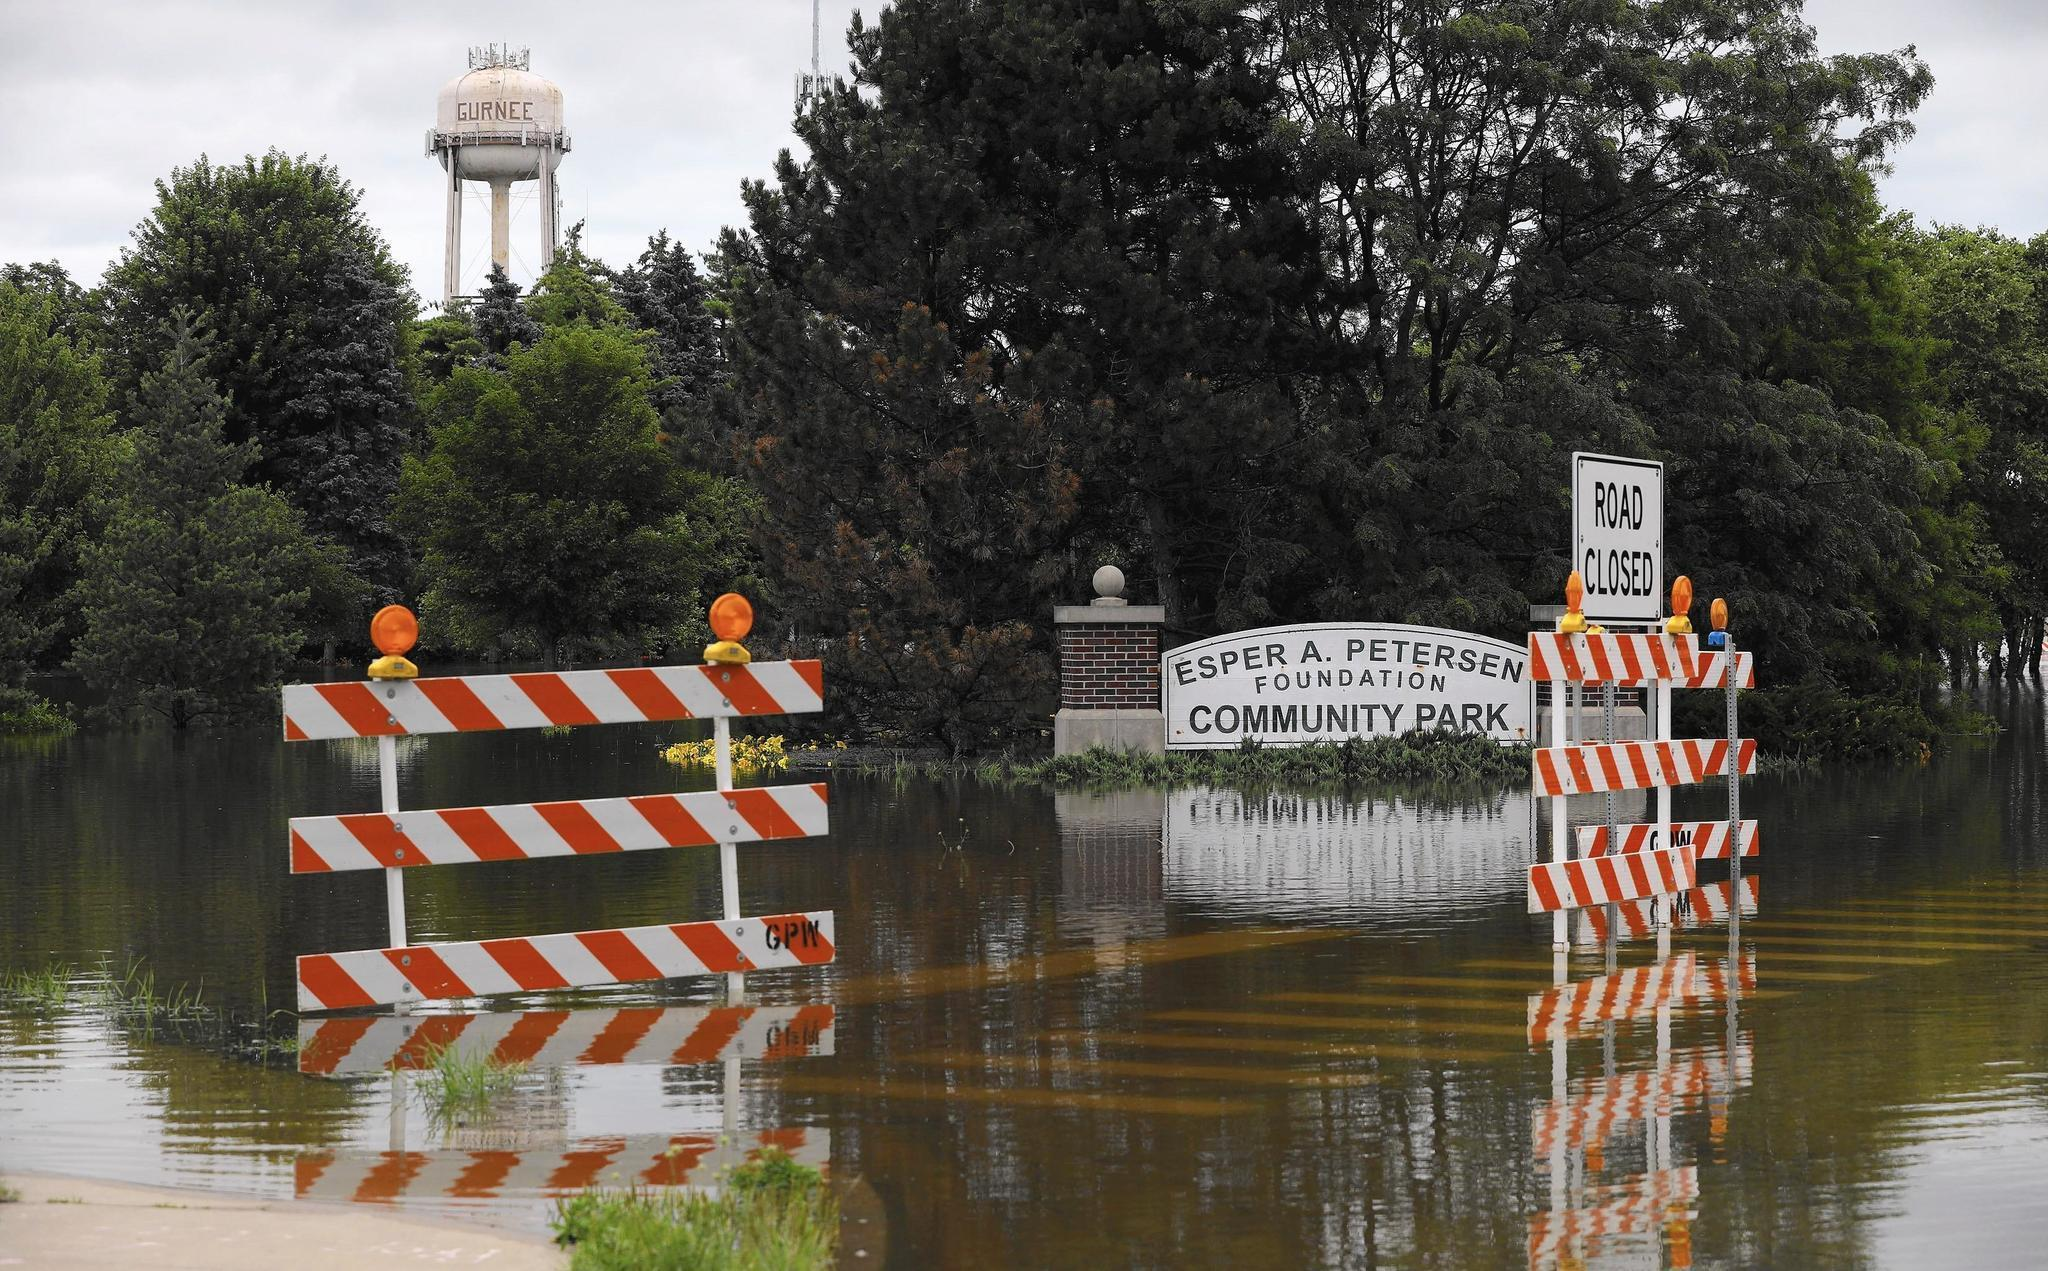 Des Plaines River Pes High Water Mark In Gurnee Residents Continue To Battle Floodwater Lake County News Sun